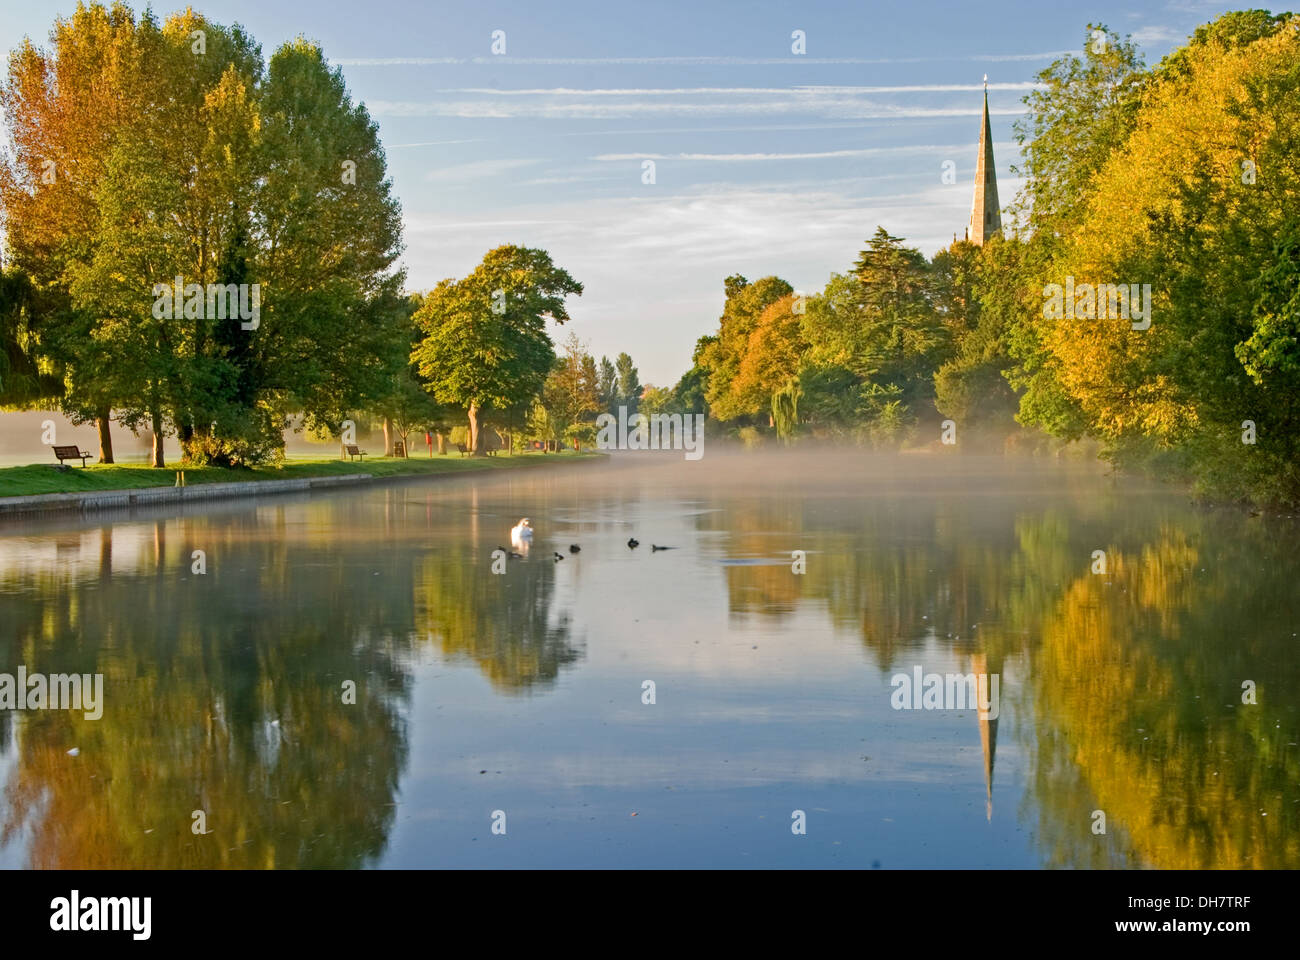 Autumnal reflections on the River Avon, with a view towards Holy Trinity church, burial place of William Shakespeare in Stratford upon Avon. - Stock Image